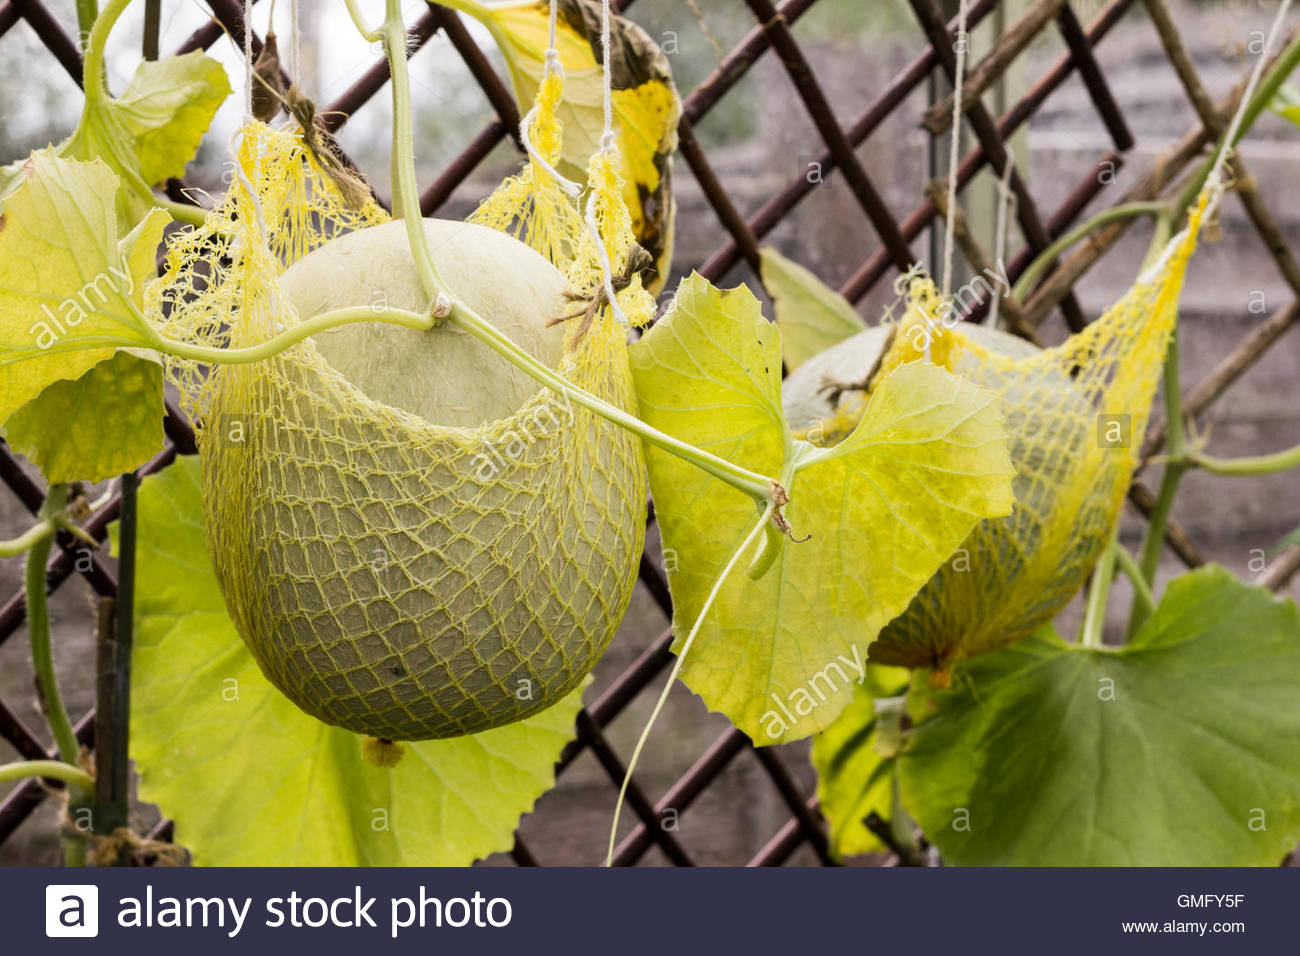 Melon being growing in a greenhouse being supported with a sling. - Stock Image